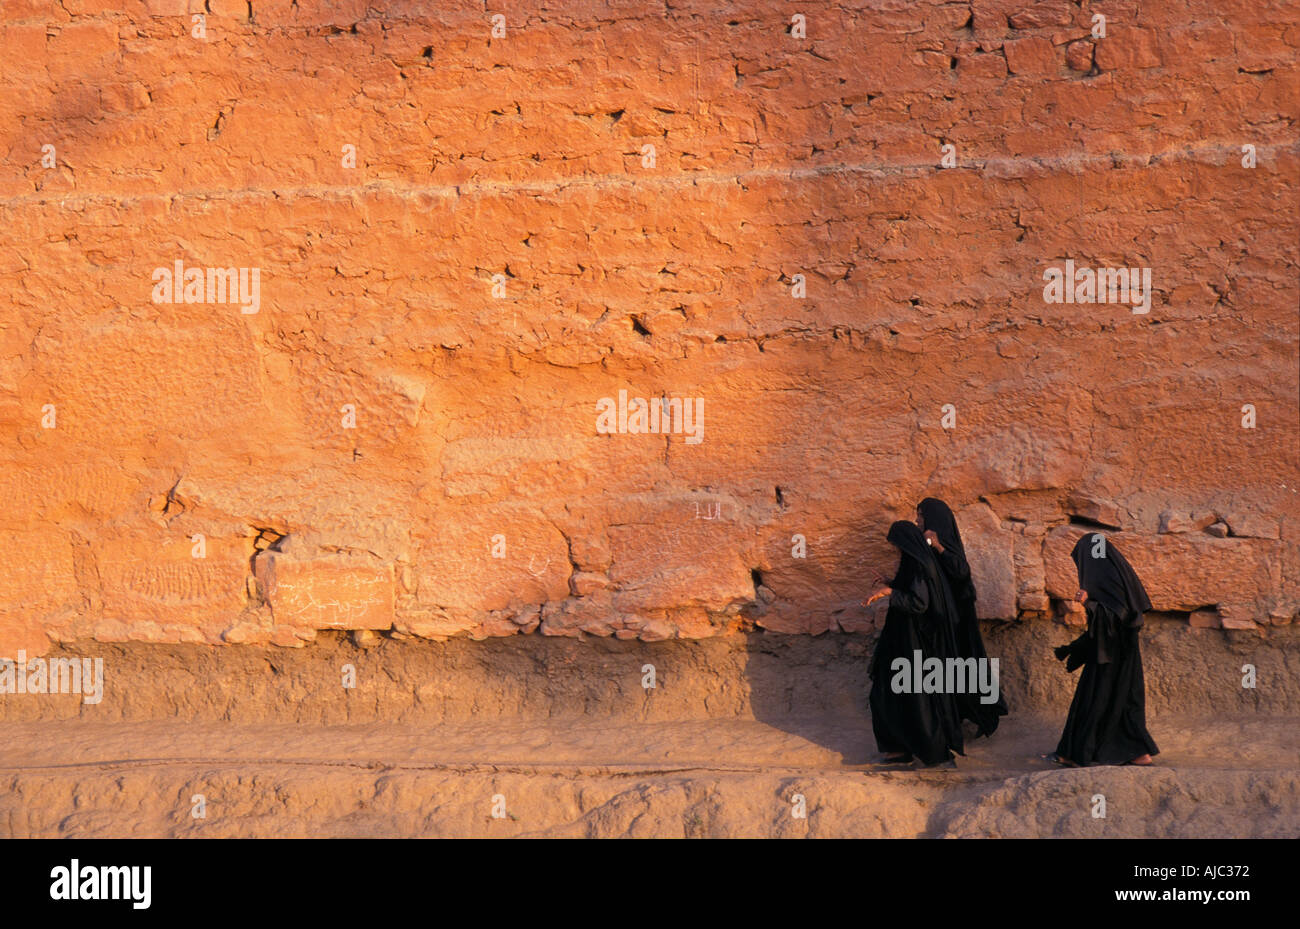 Muslim women robed in black burqas walking along the path around the pouter wall of Karnak Temple Upper Egypt Nr Luxor - Stock Image